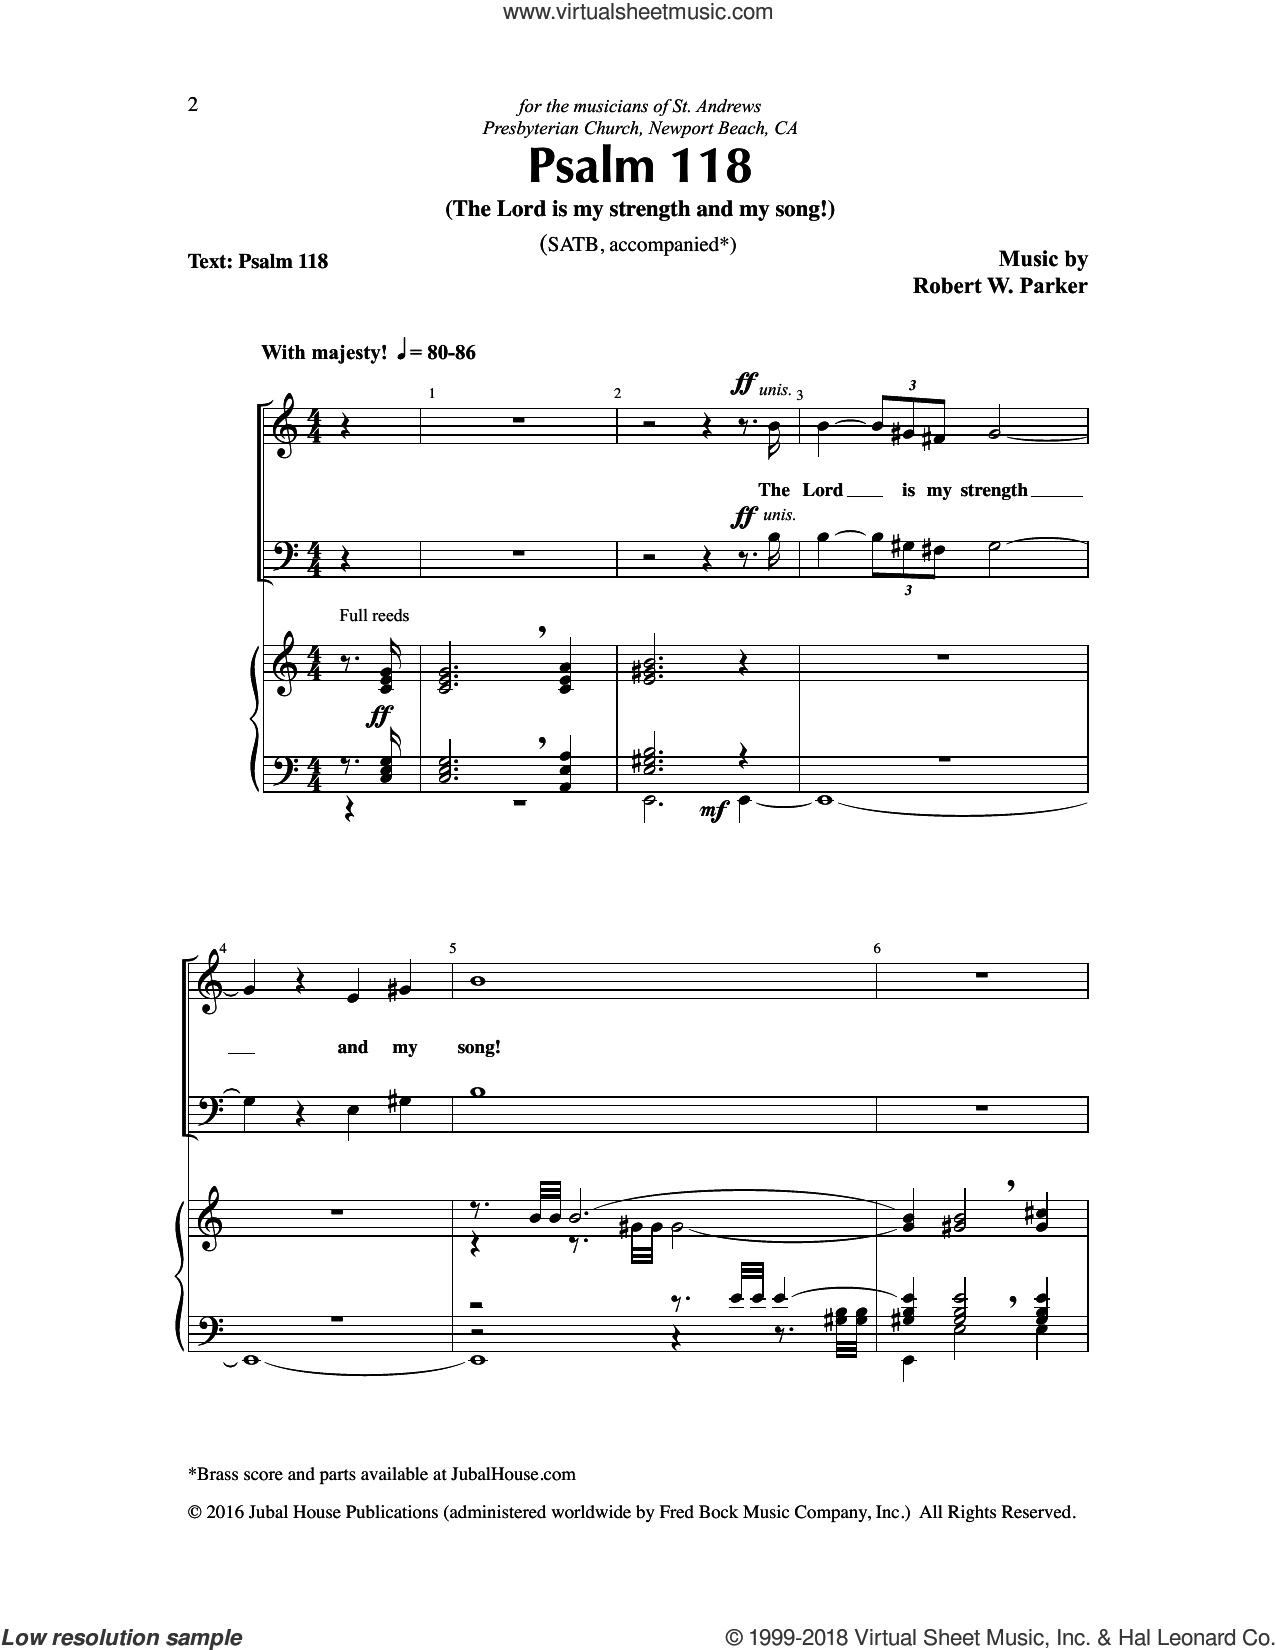 Psalm 118 (The Lord is my strength and my song!) sheet music for choir (SATB: soprano, alto, tenor, bass) by Robert W. Parker, intermediate skill level